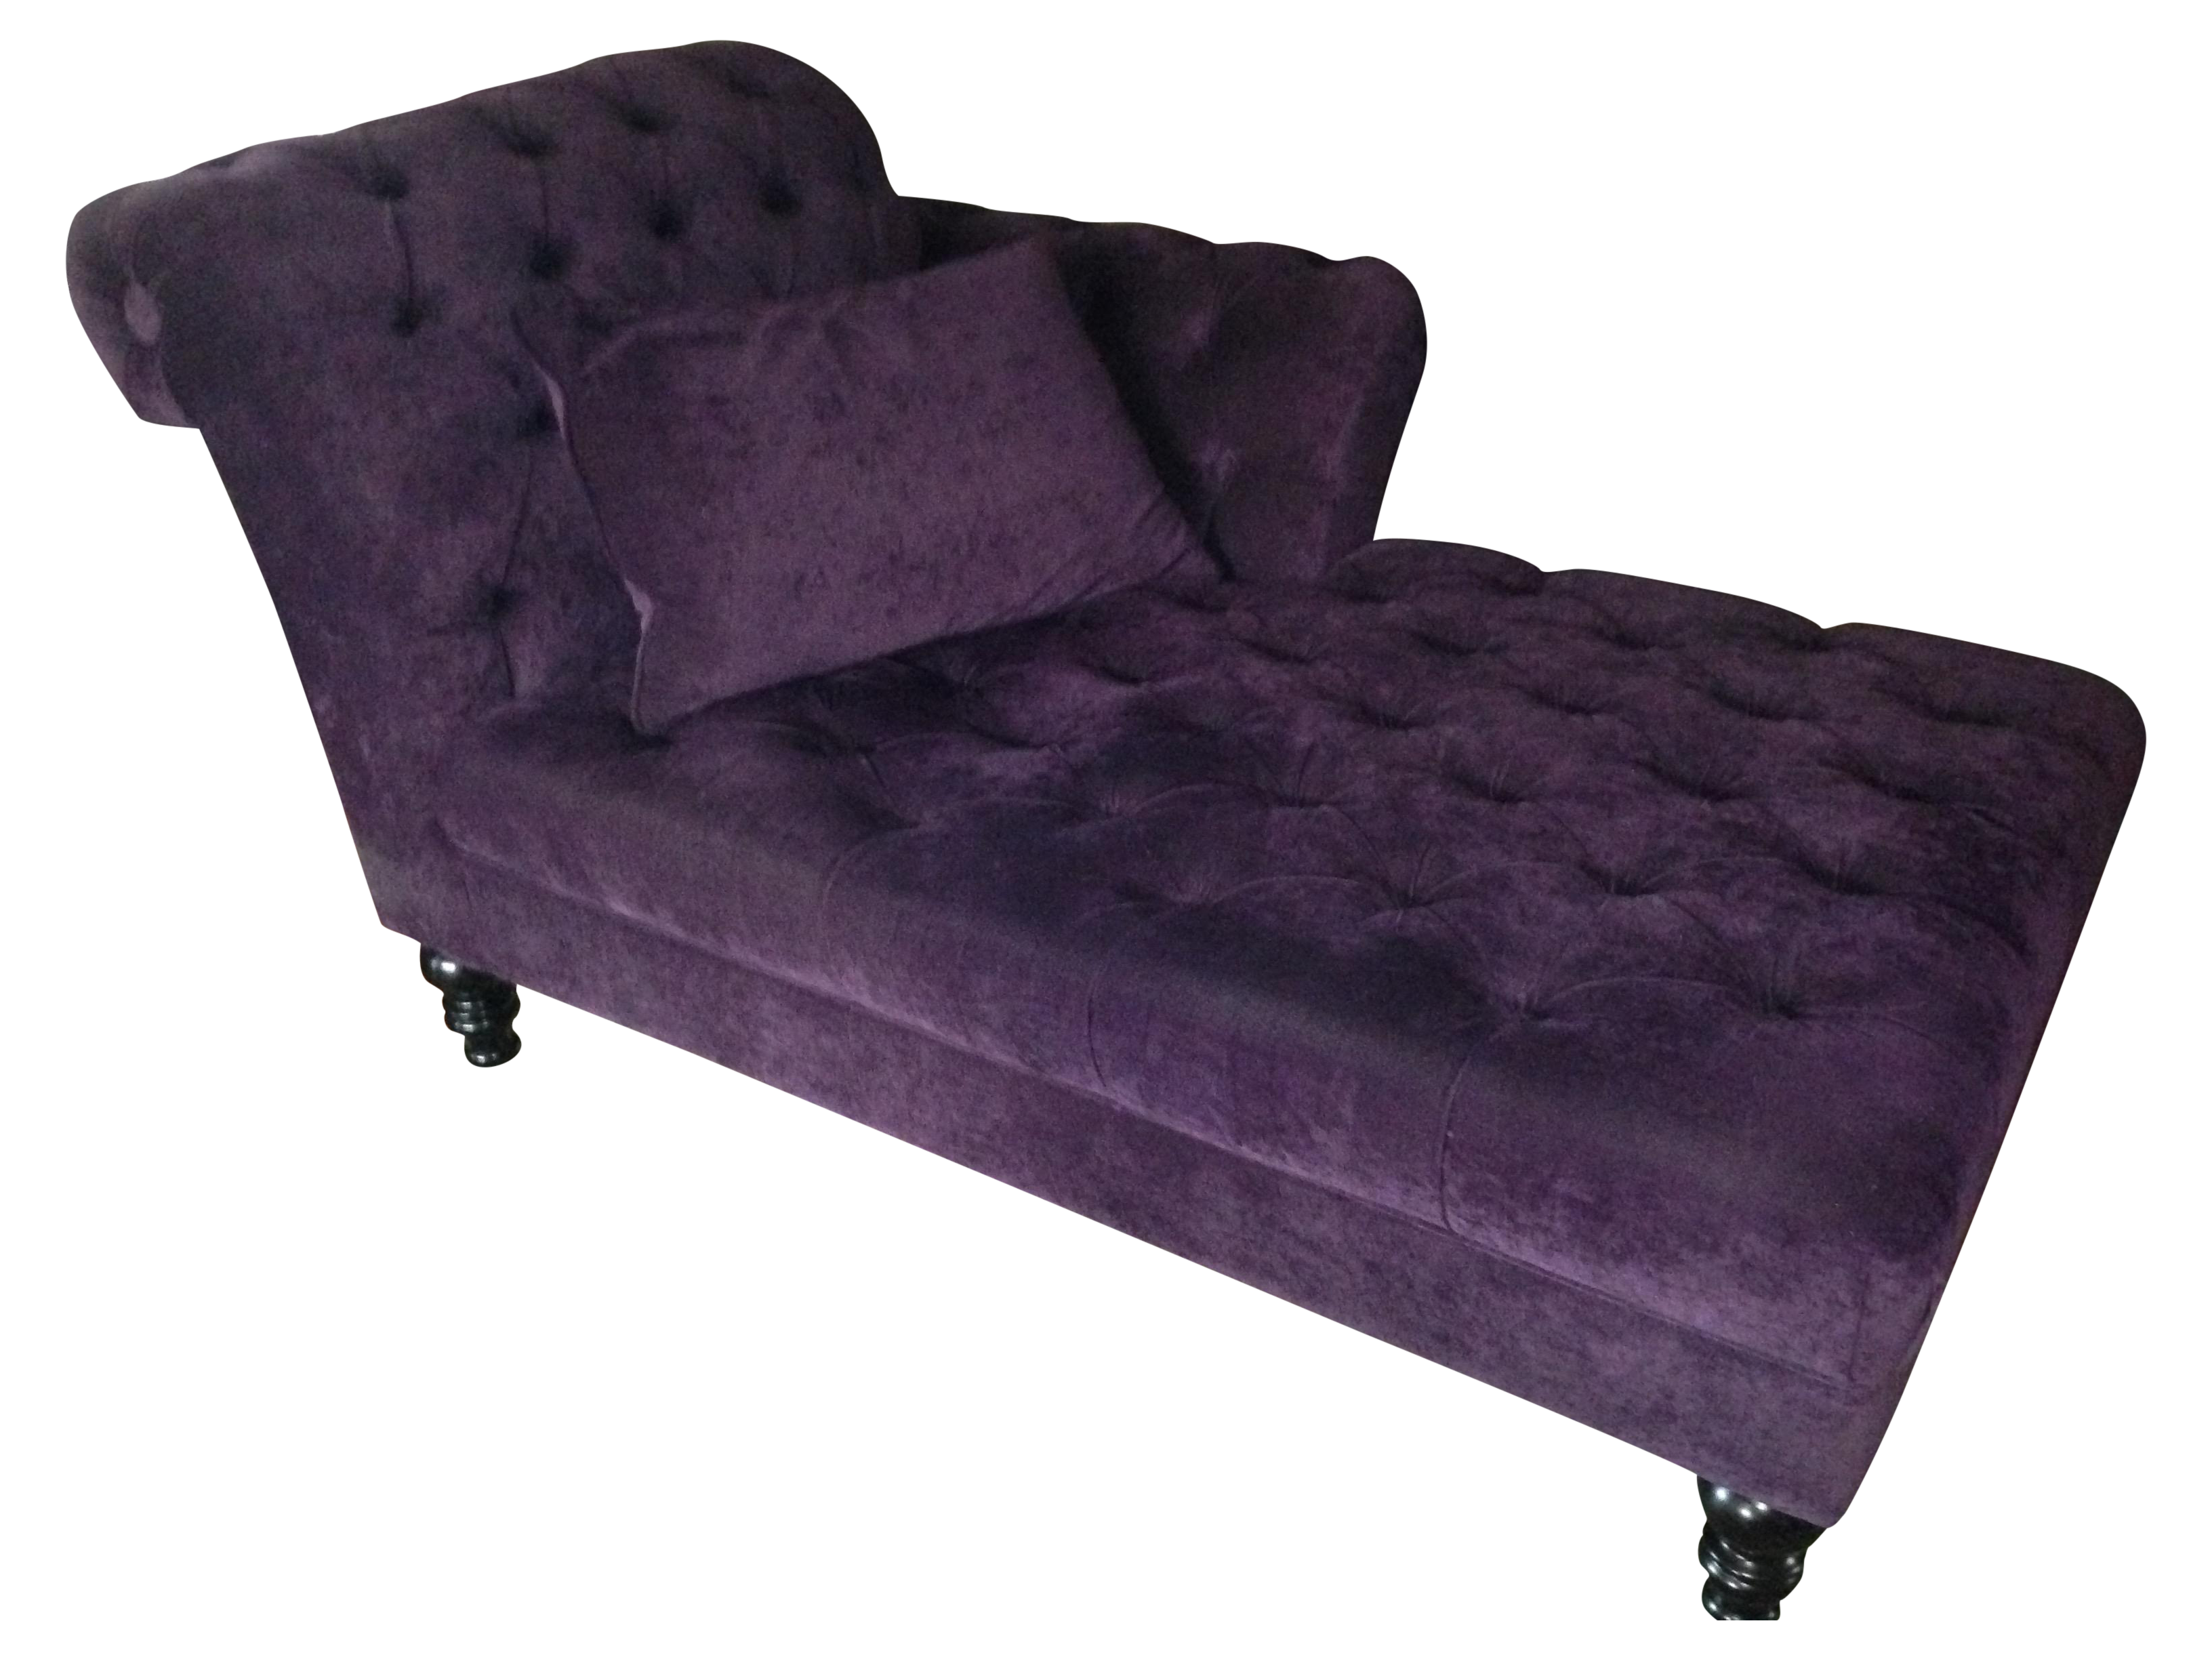 chairish chaise lounge futon futons lounger product velvet purple